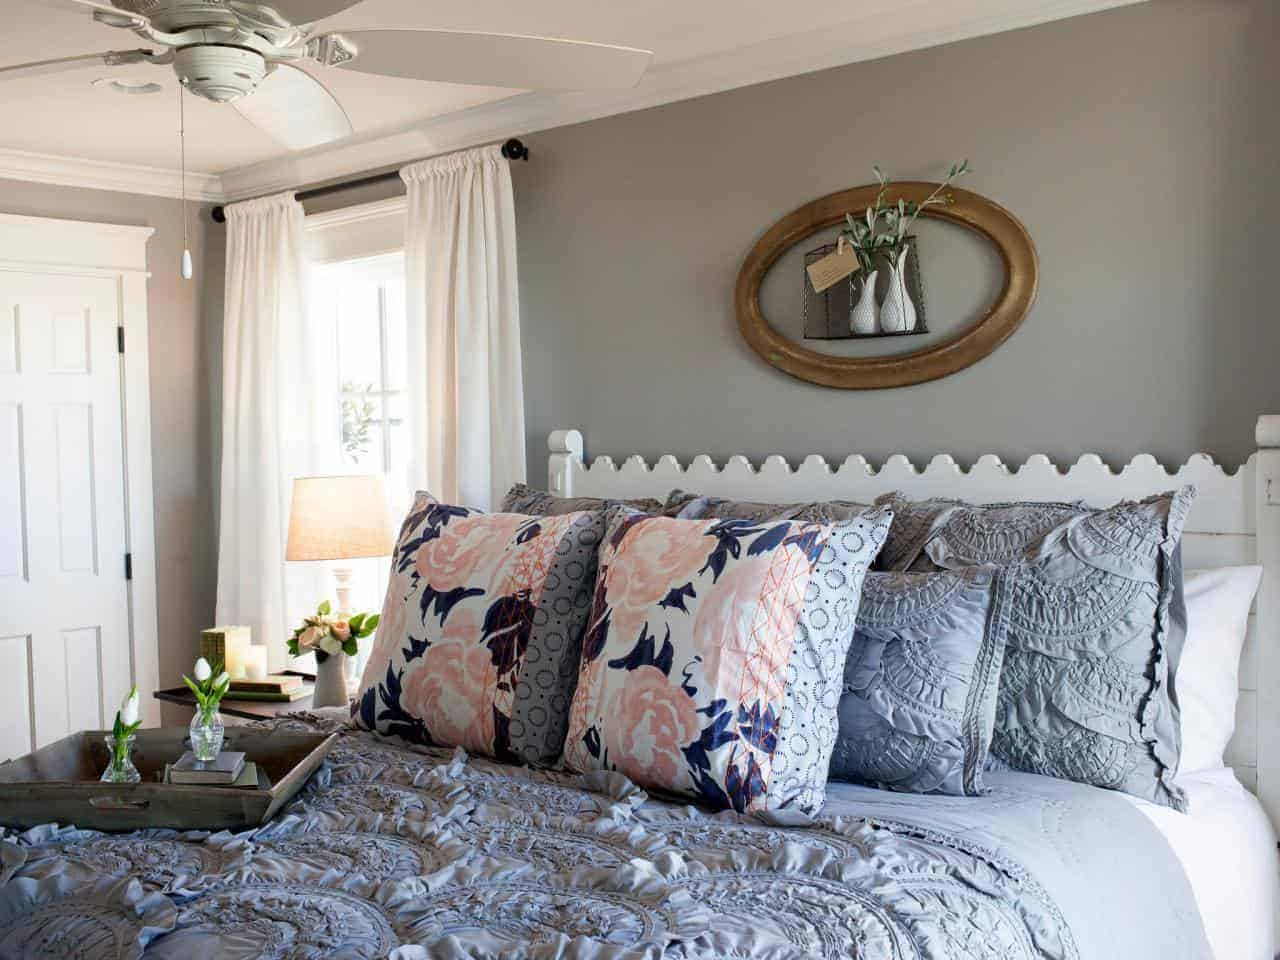 Joanna Gaines Fixer Upper Style - Recreate this beautiful fixer upper bedroom makeover with this source list of copycat items